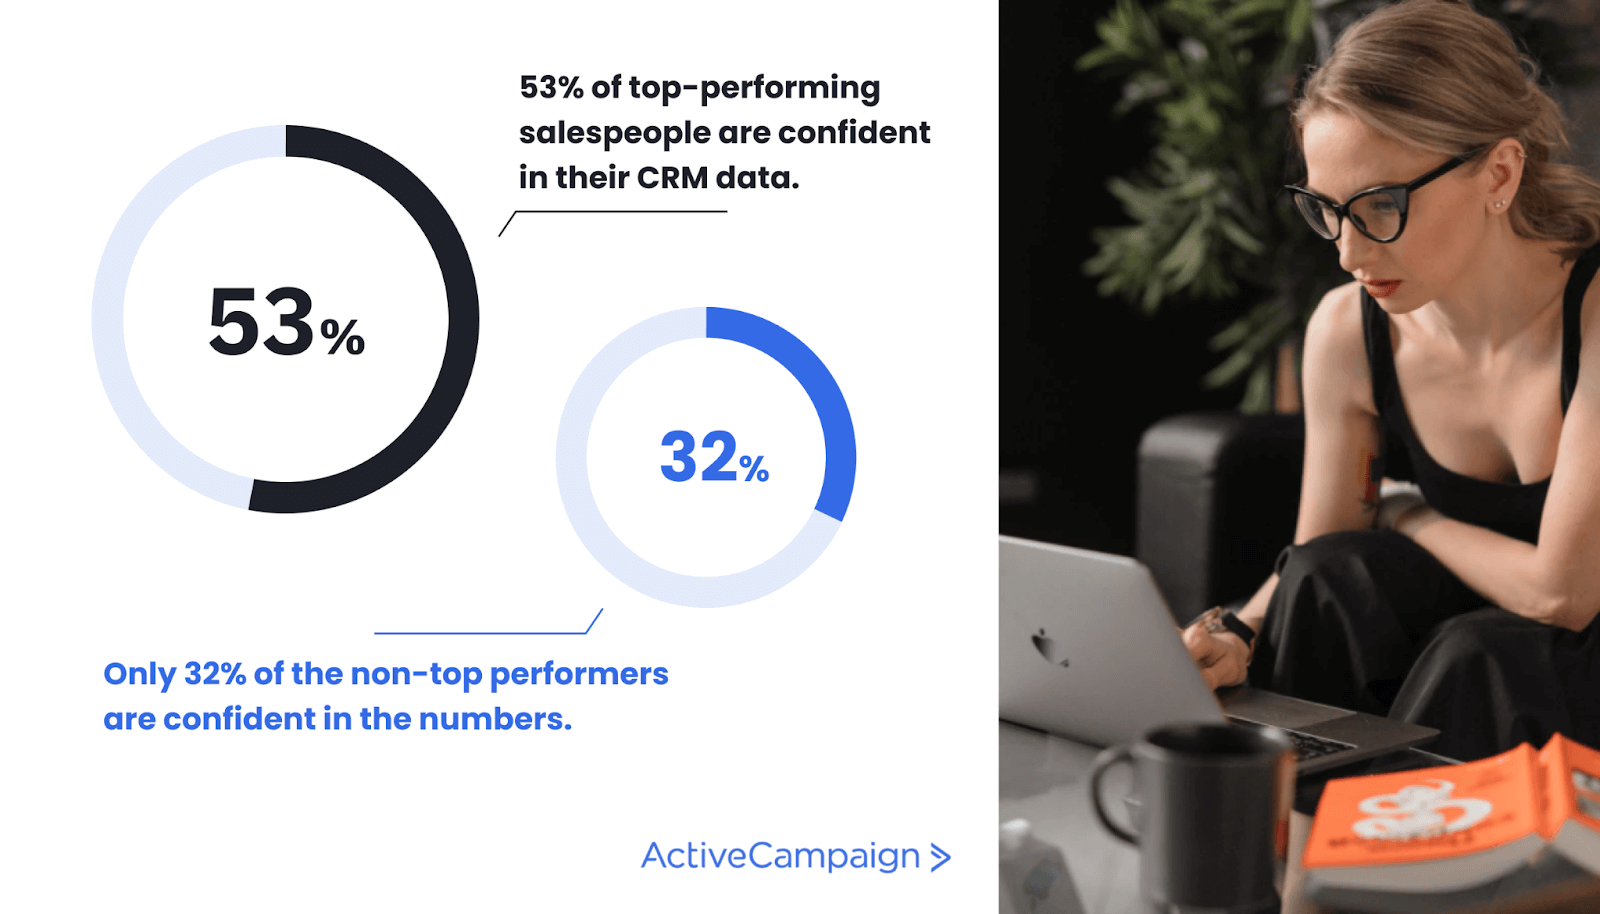 Graphic showing that 53% of top-performing salespeople are confident in their CRM data. Only 32% of the non-top performers are confident in the numbers.